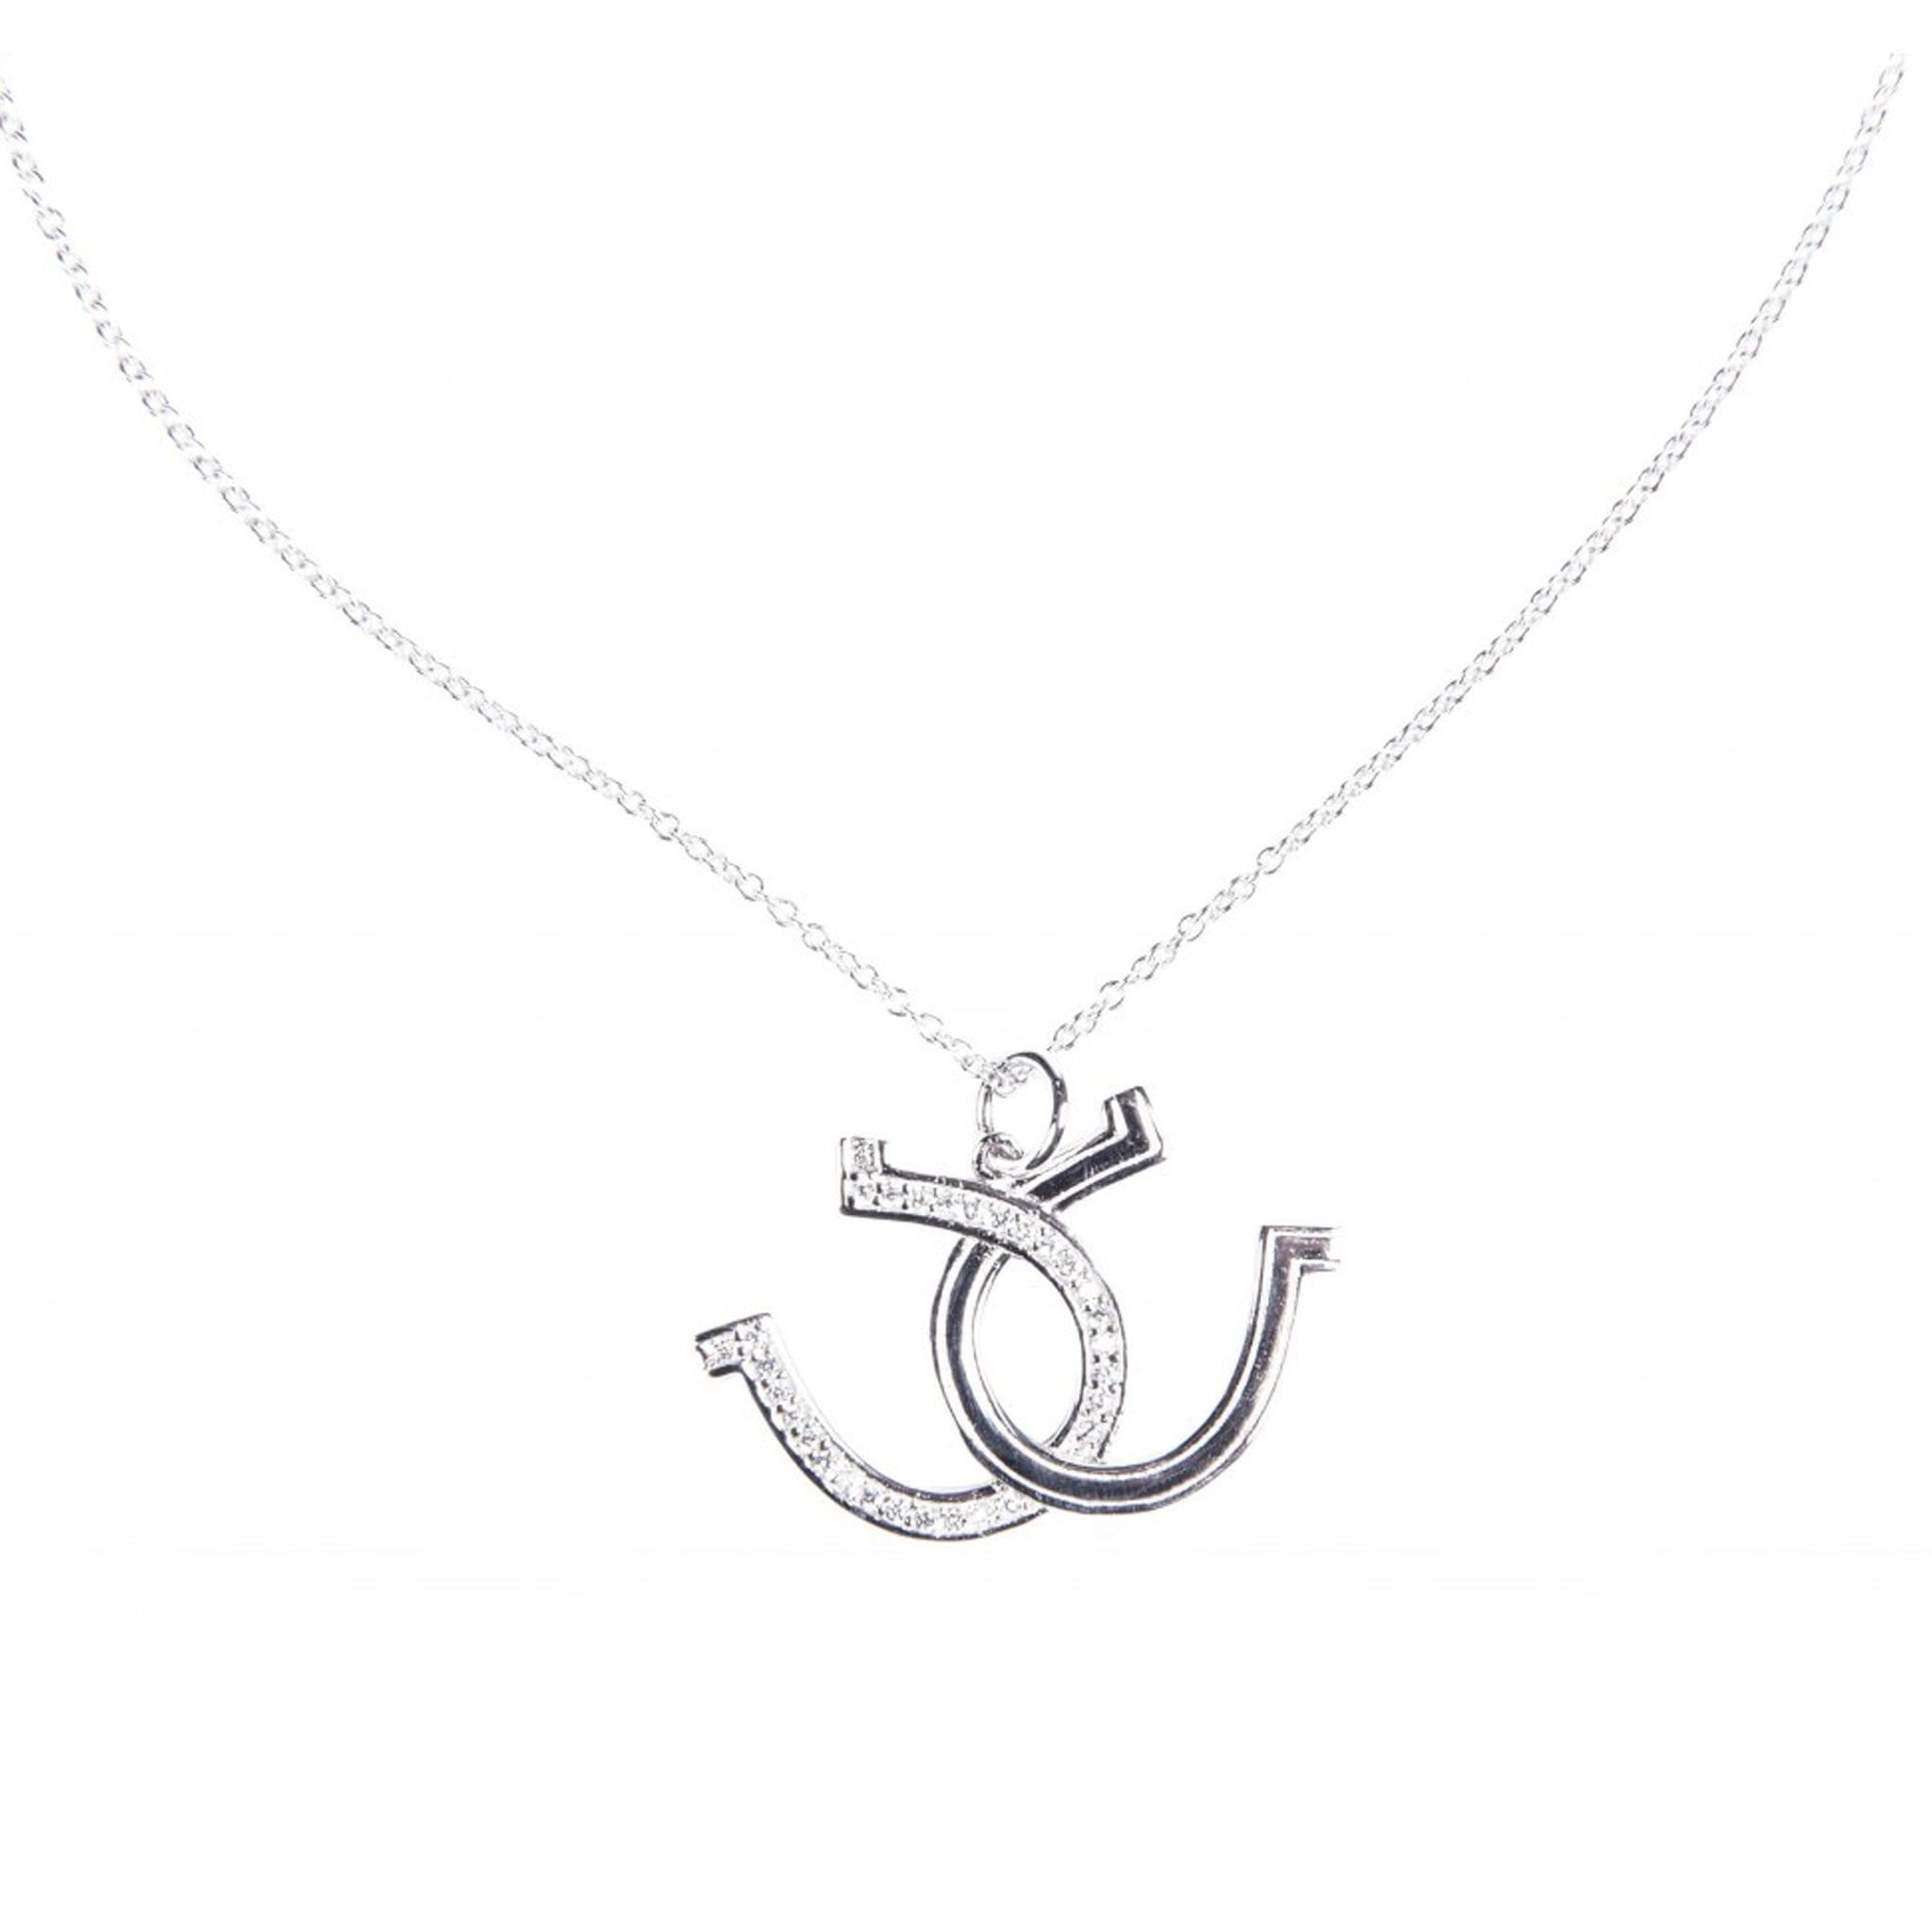 HKM Stirling Silver Horseshoe Necklace